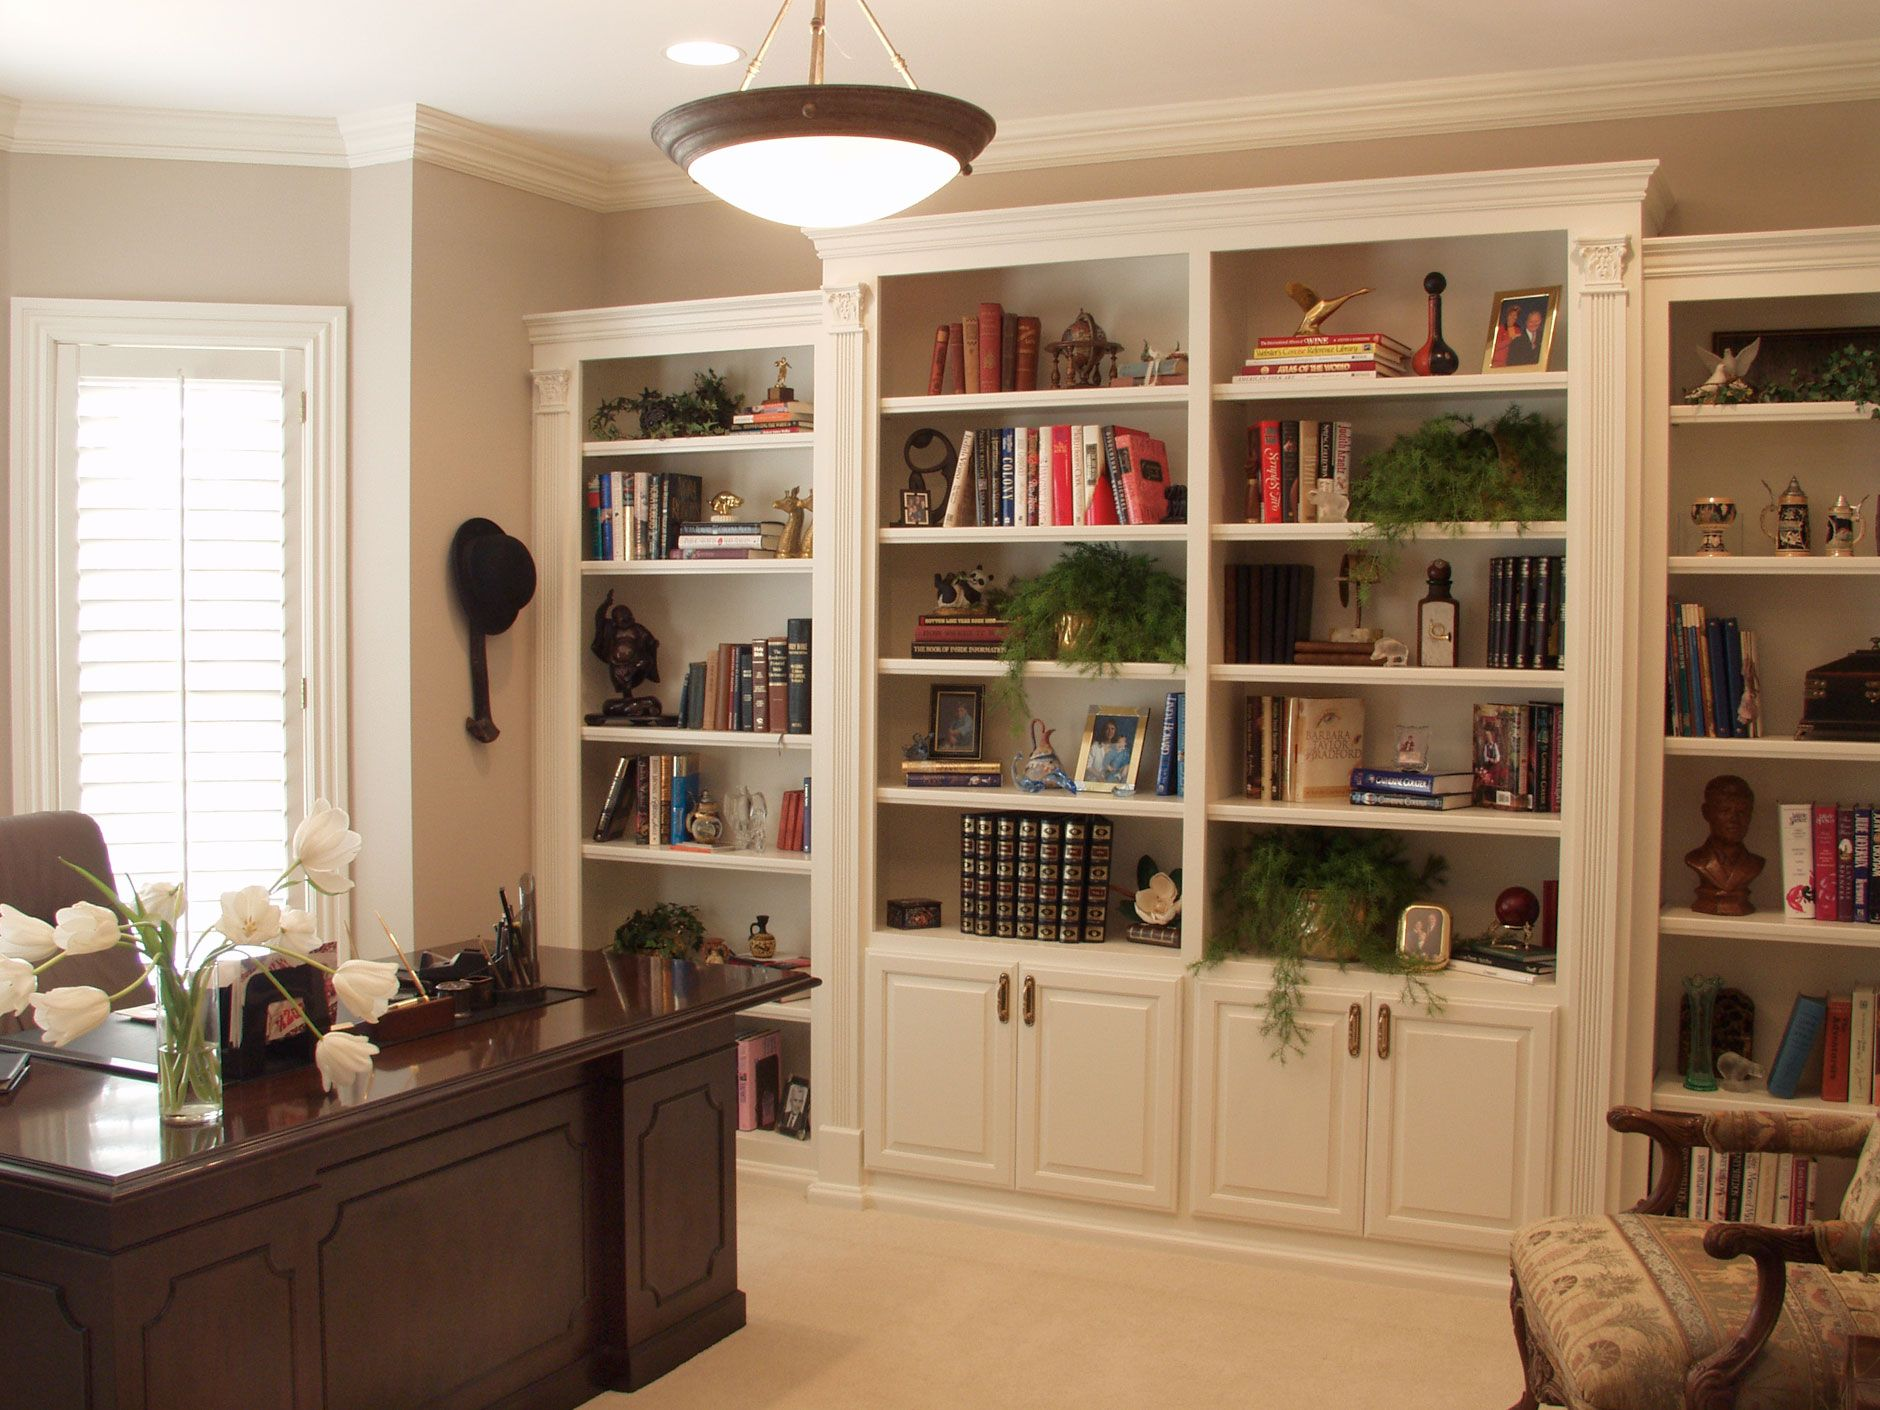 Office Cabinets And Bookshelves With Cabinet Doors By Taylorcraft Door Company In Style